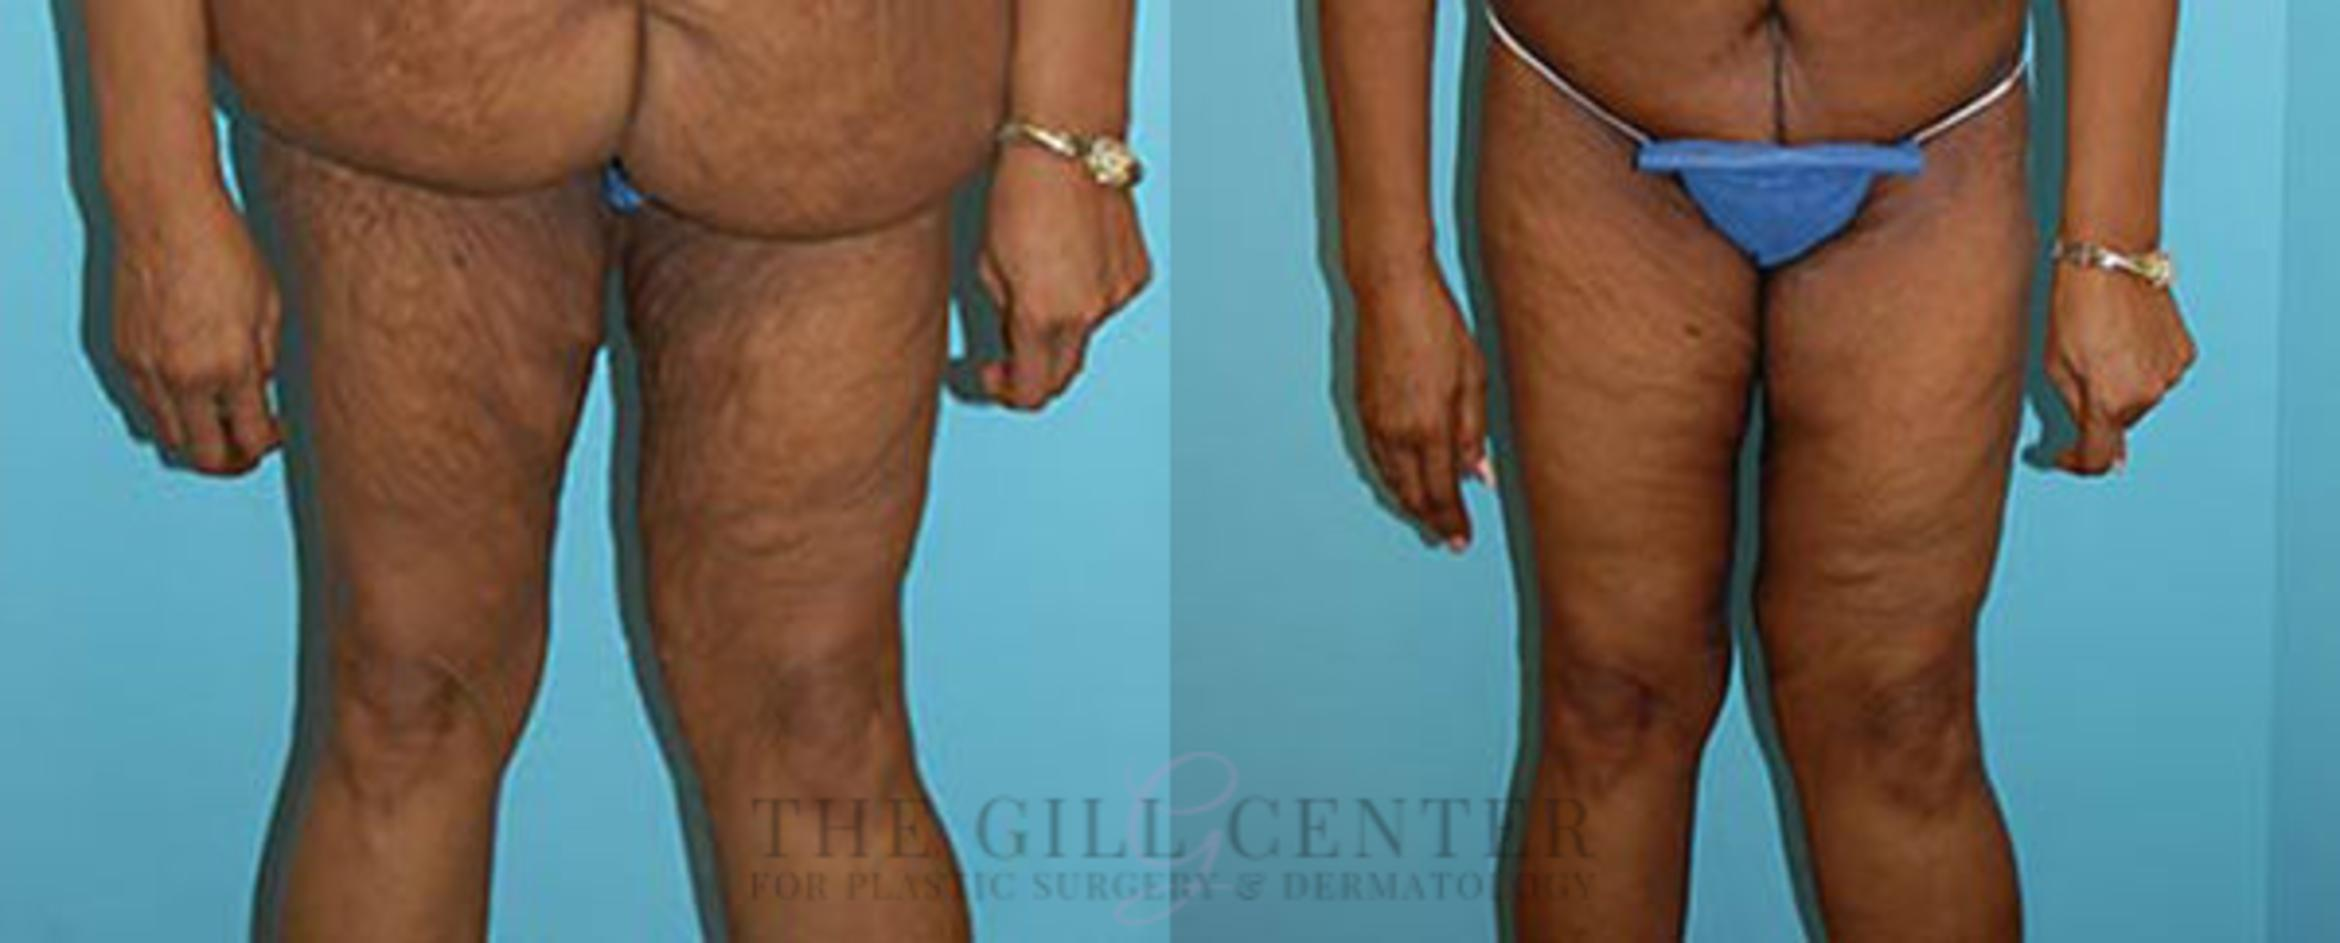 Thigh Lift Case 170 Before & After Front | Shenandoah, TX | The Gill Center for Plastic Surgery and Dermatology